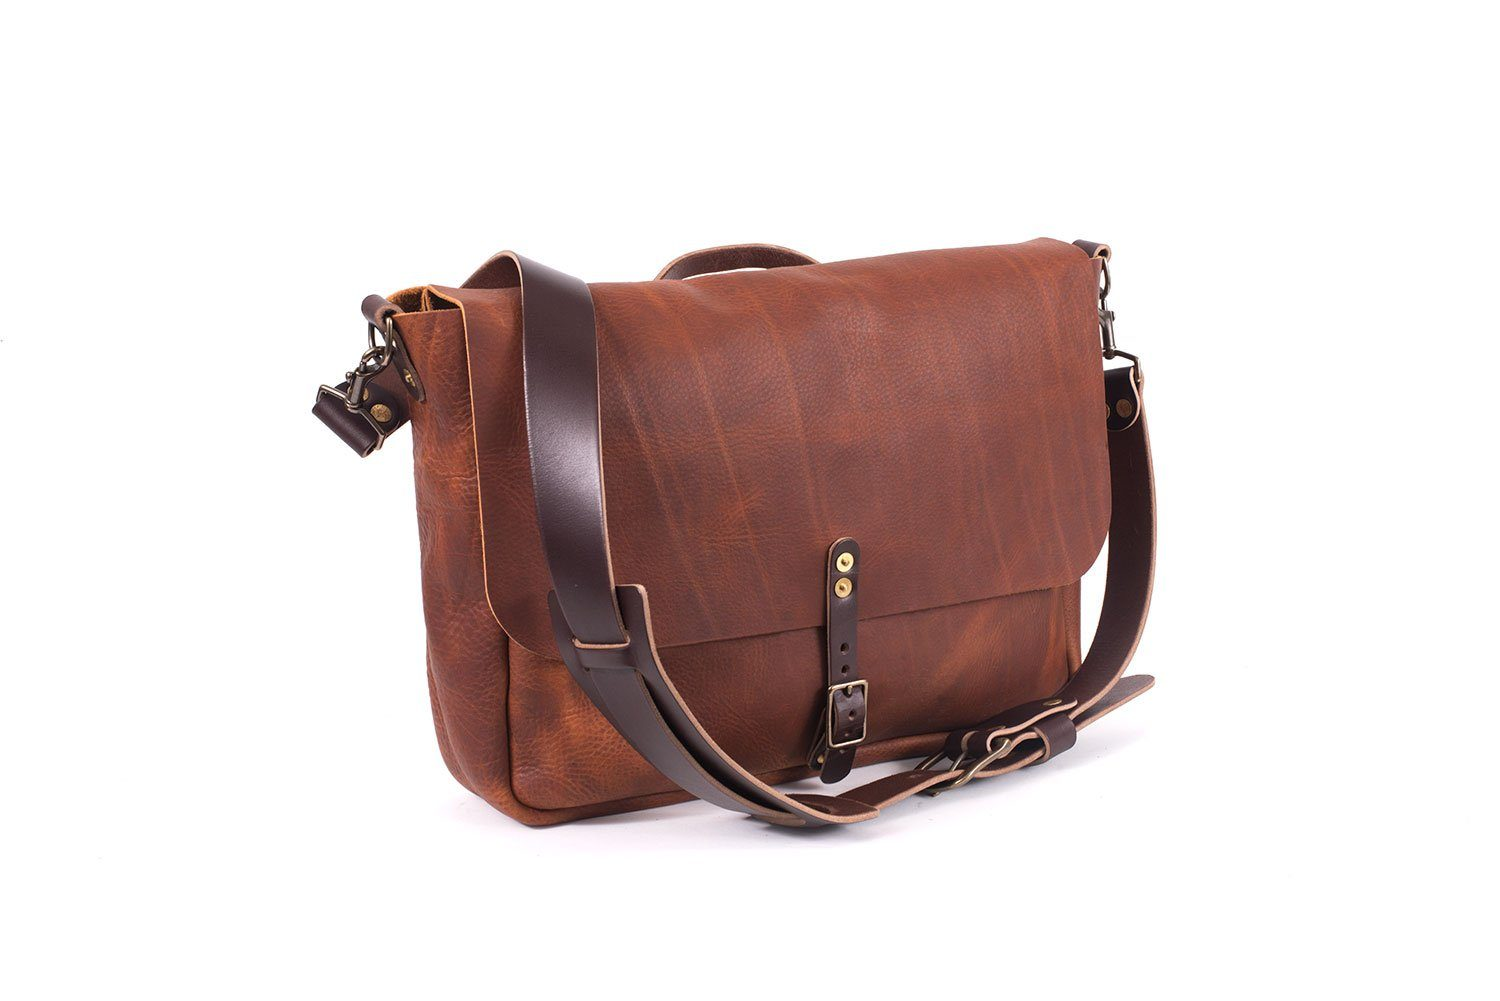 STEPHEN LEATHER MESSENGER BAG